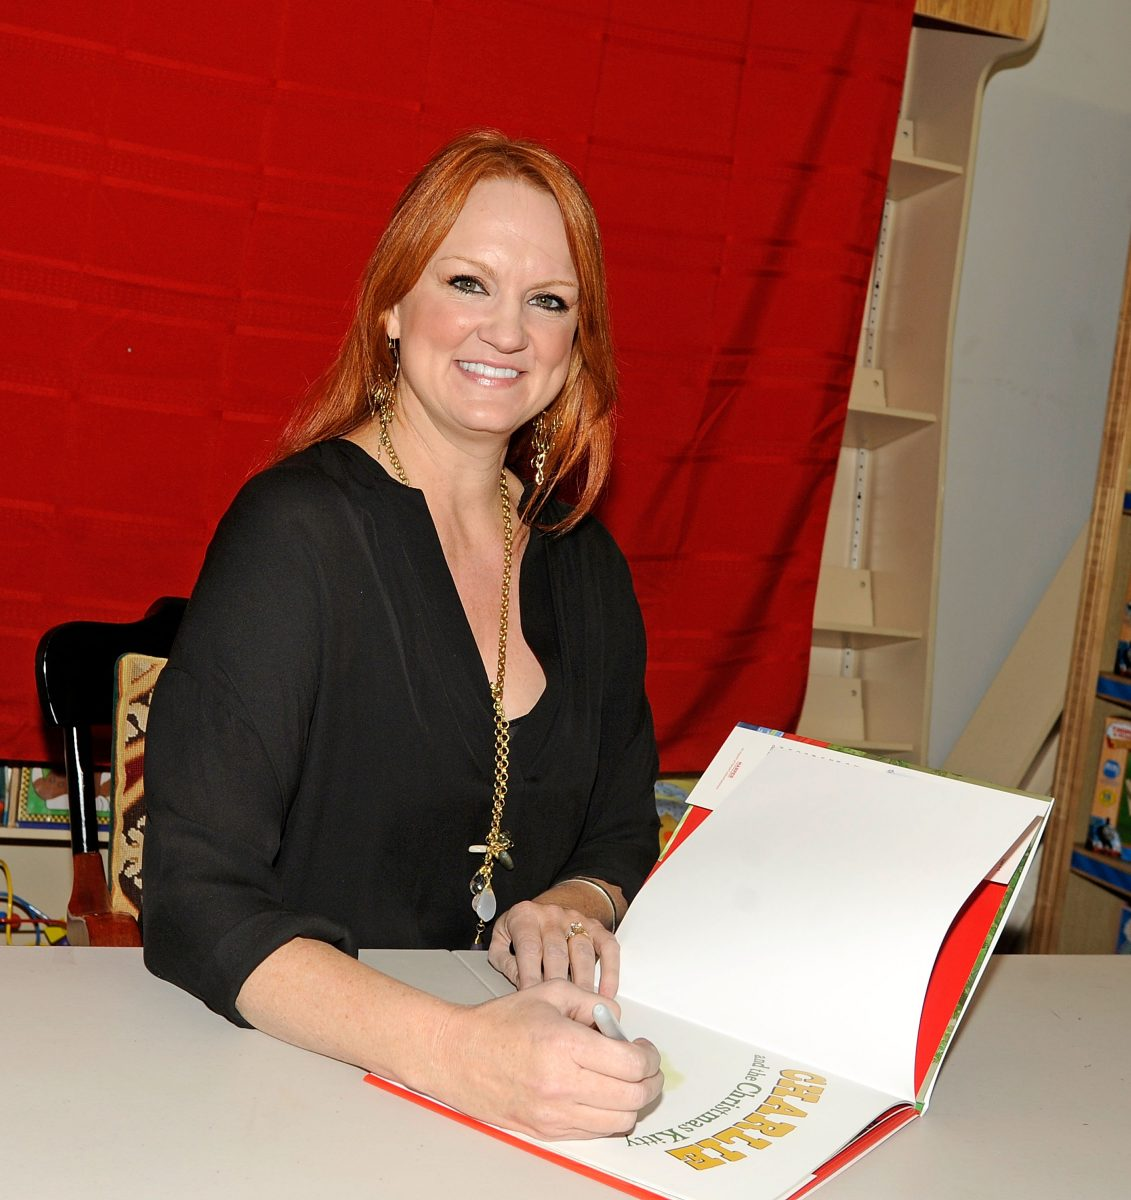 The Pioneer Woman Ree Drummond smiles as she signs a cookbook at a 2012 book signing